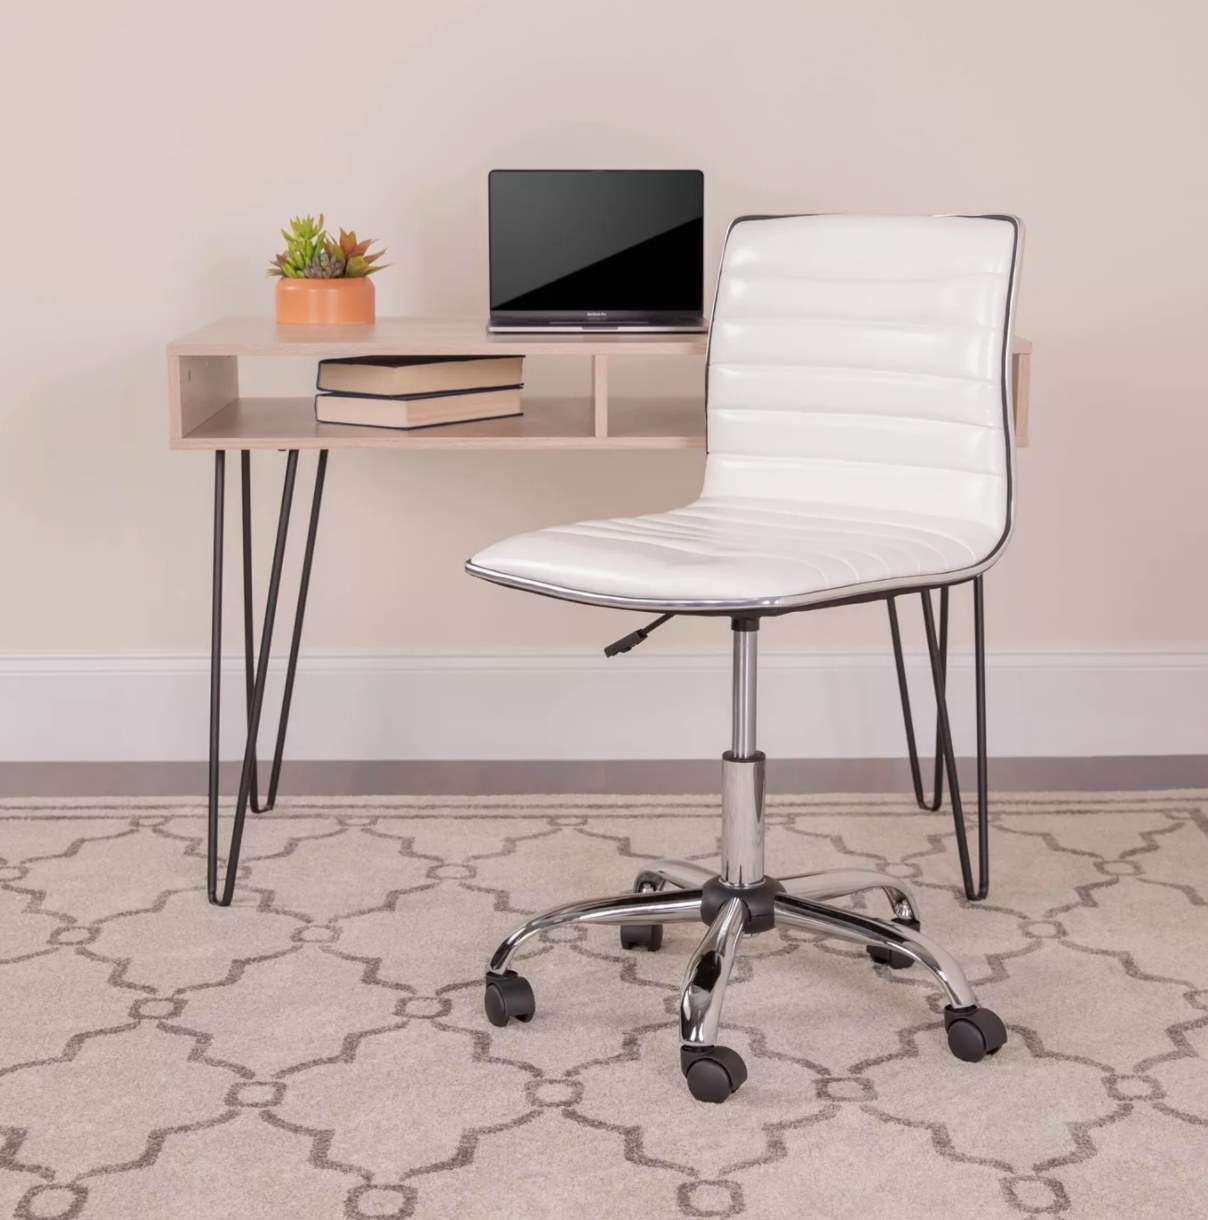 The armless desk chair